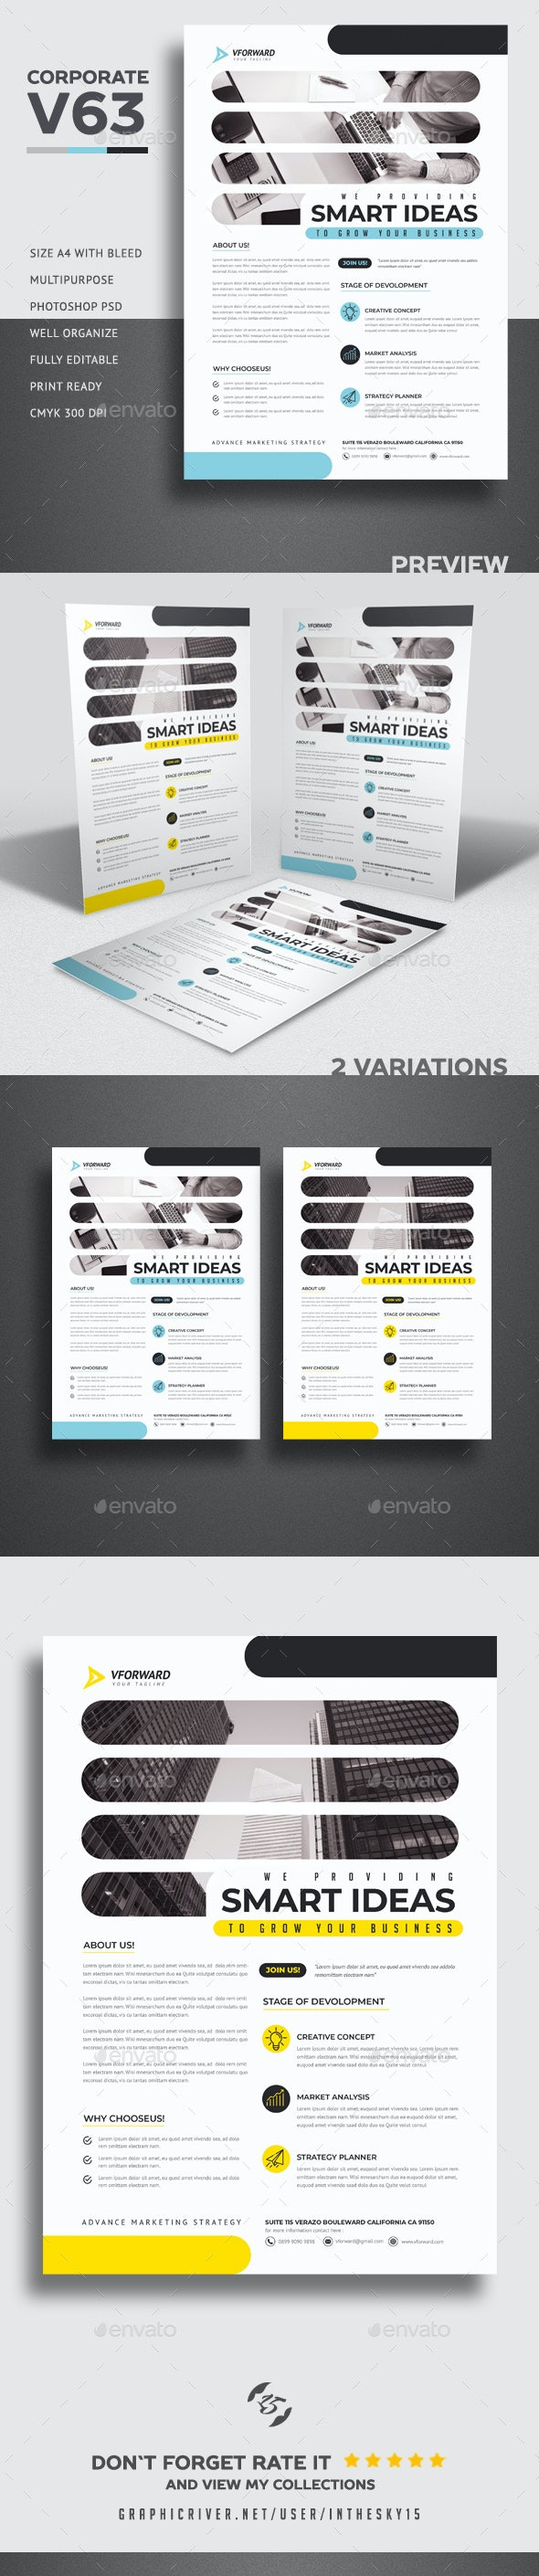 Corporate V63 Flyer - Corporate Flyers